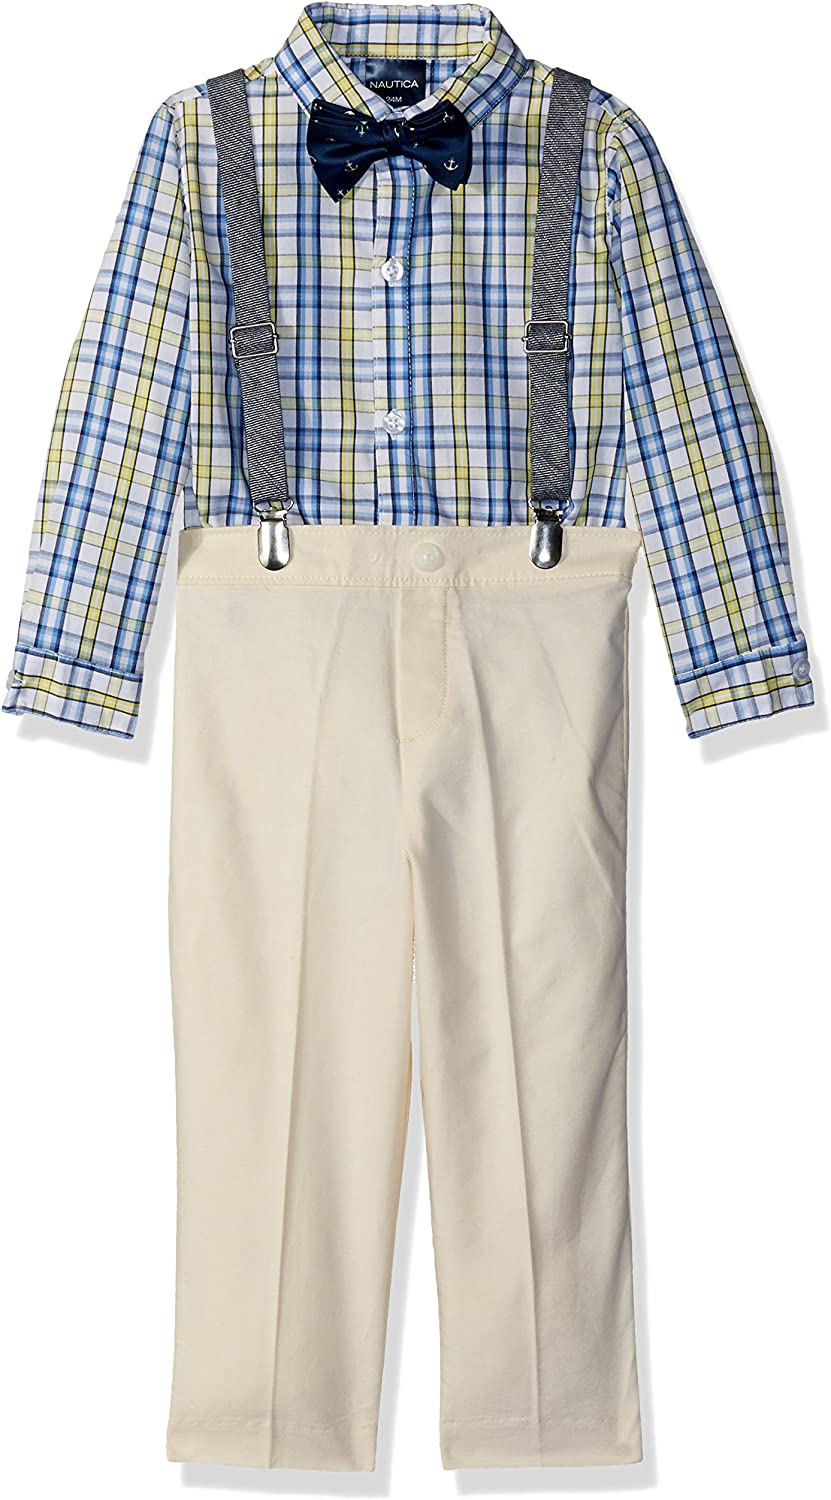 Boys' Set Bombing Sales of SALE items from new works free shipping with Shirt Pant Bow and Tie Suspenders